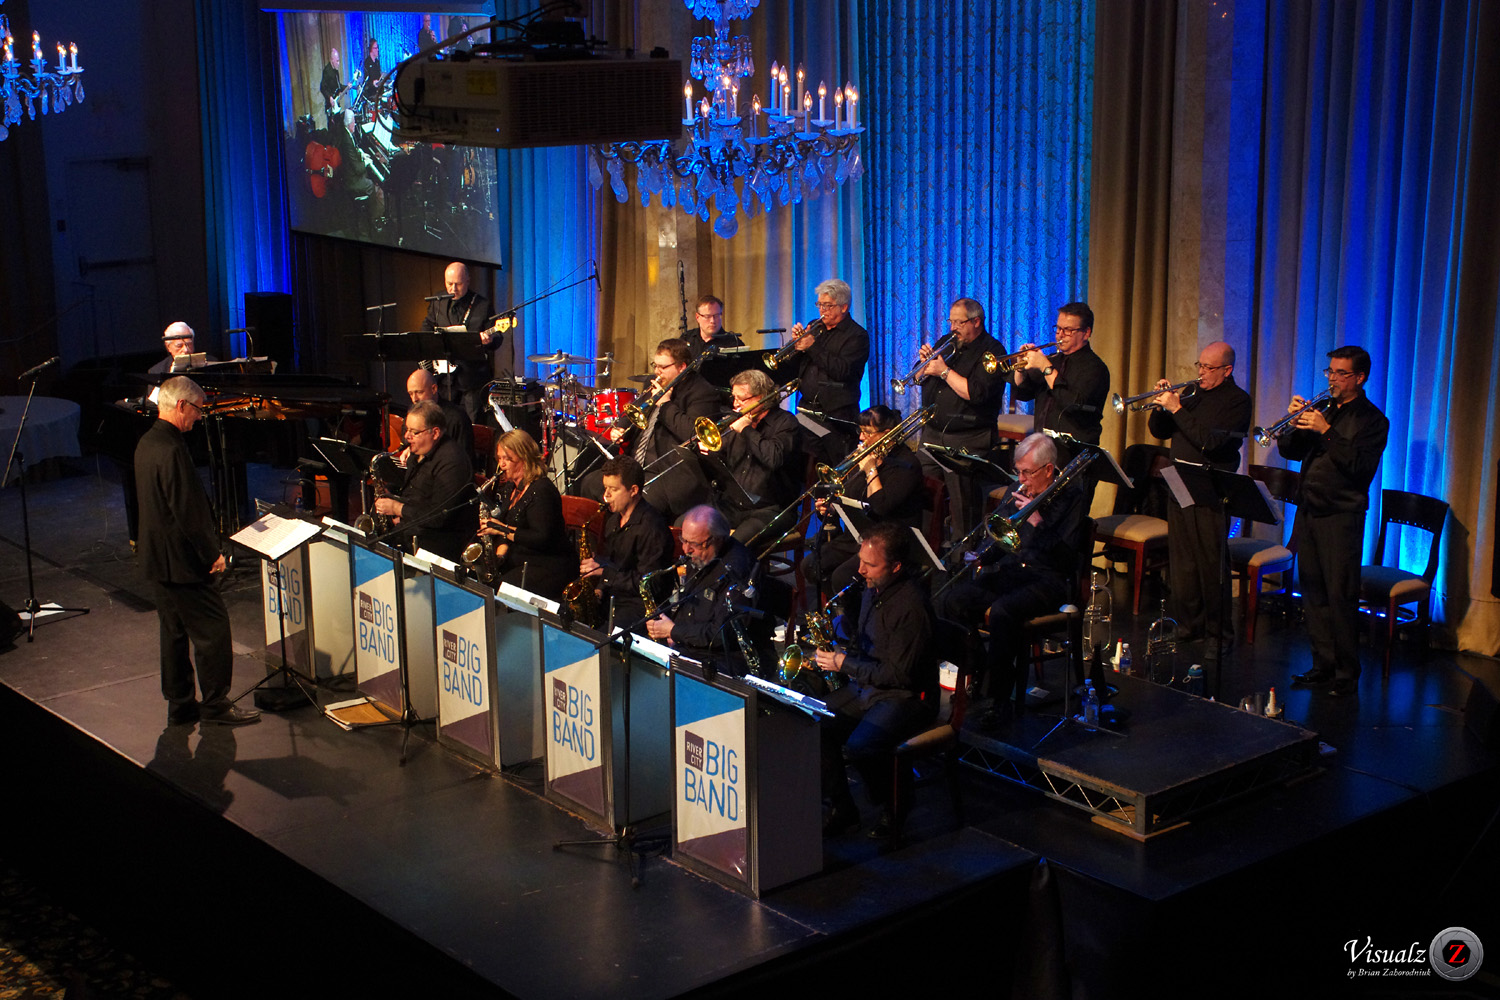 IMGP5731 - River City Big Band with Tommy Banks